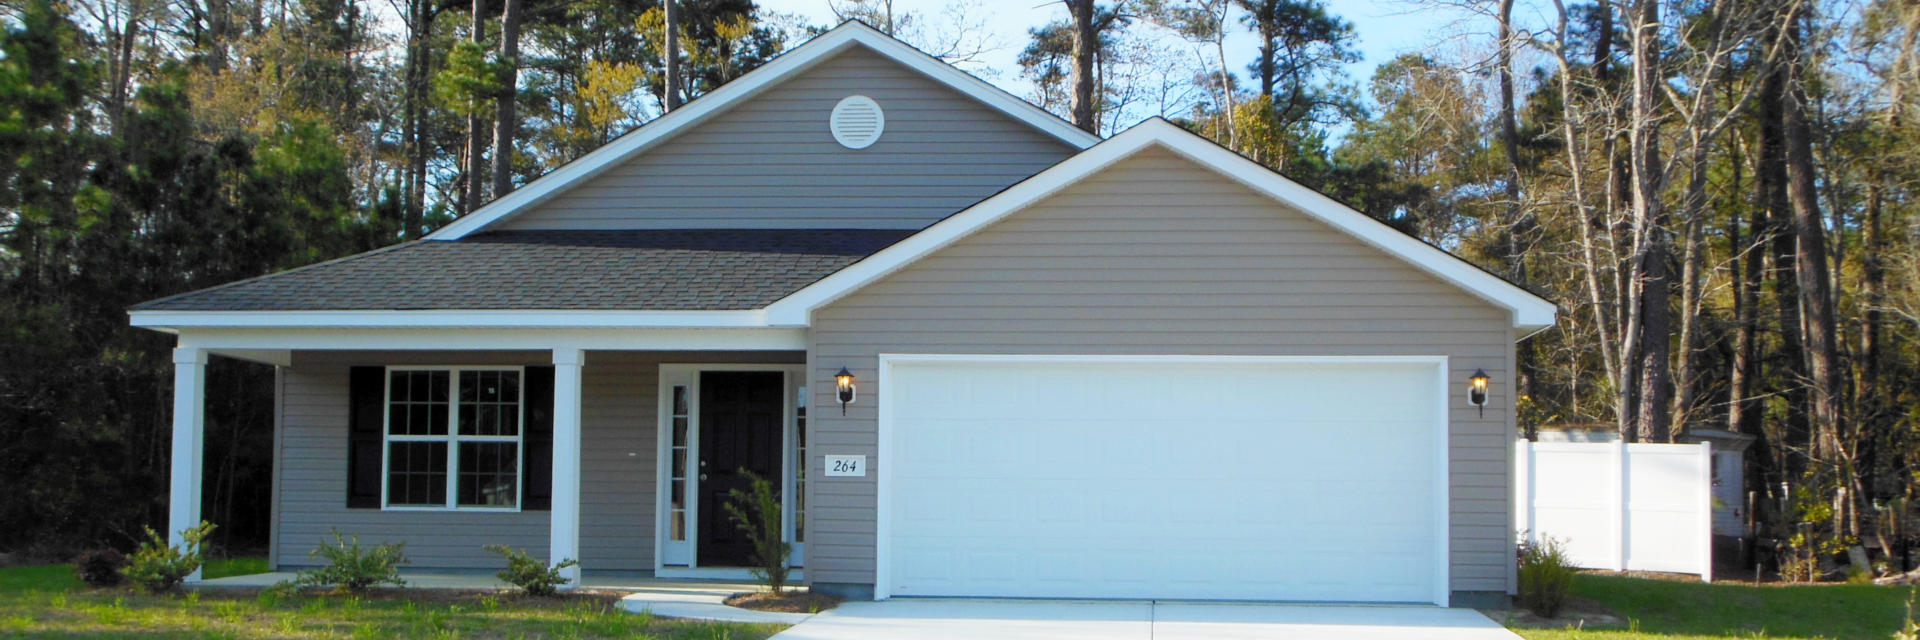 Budget Friendly Homes in Carolina Cottages Myrtle Beach SC